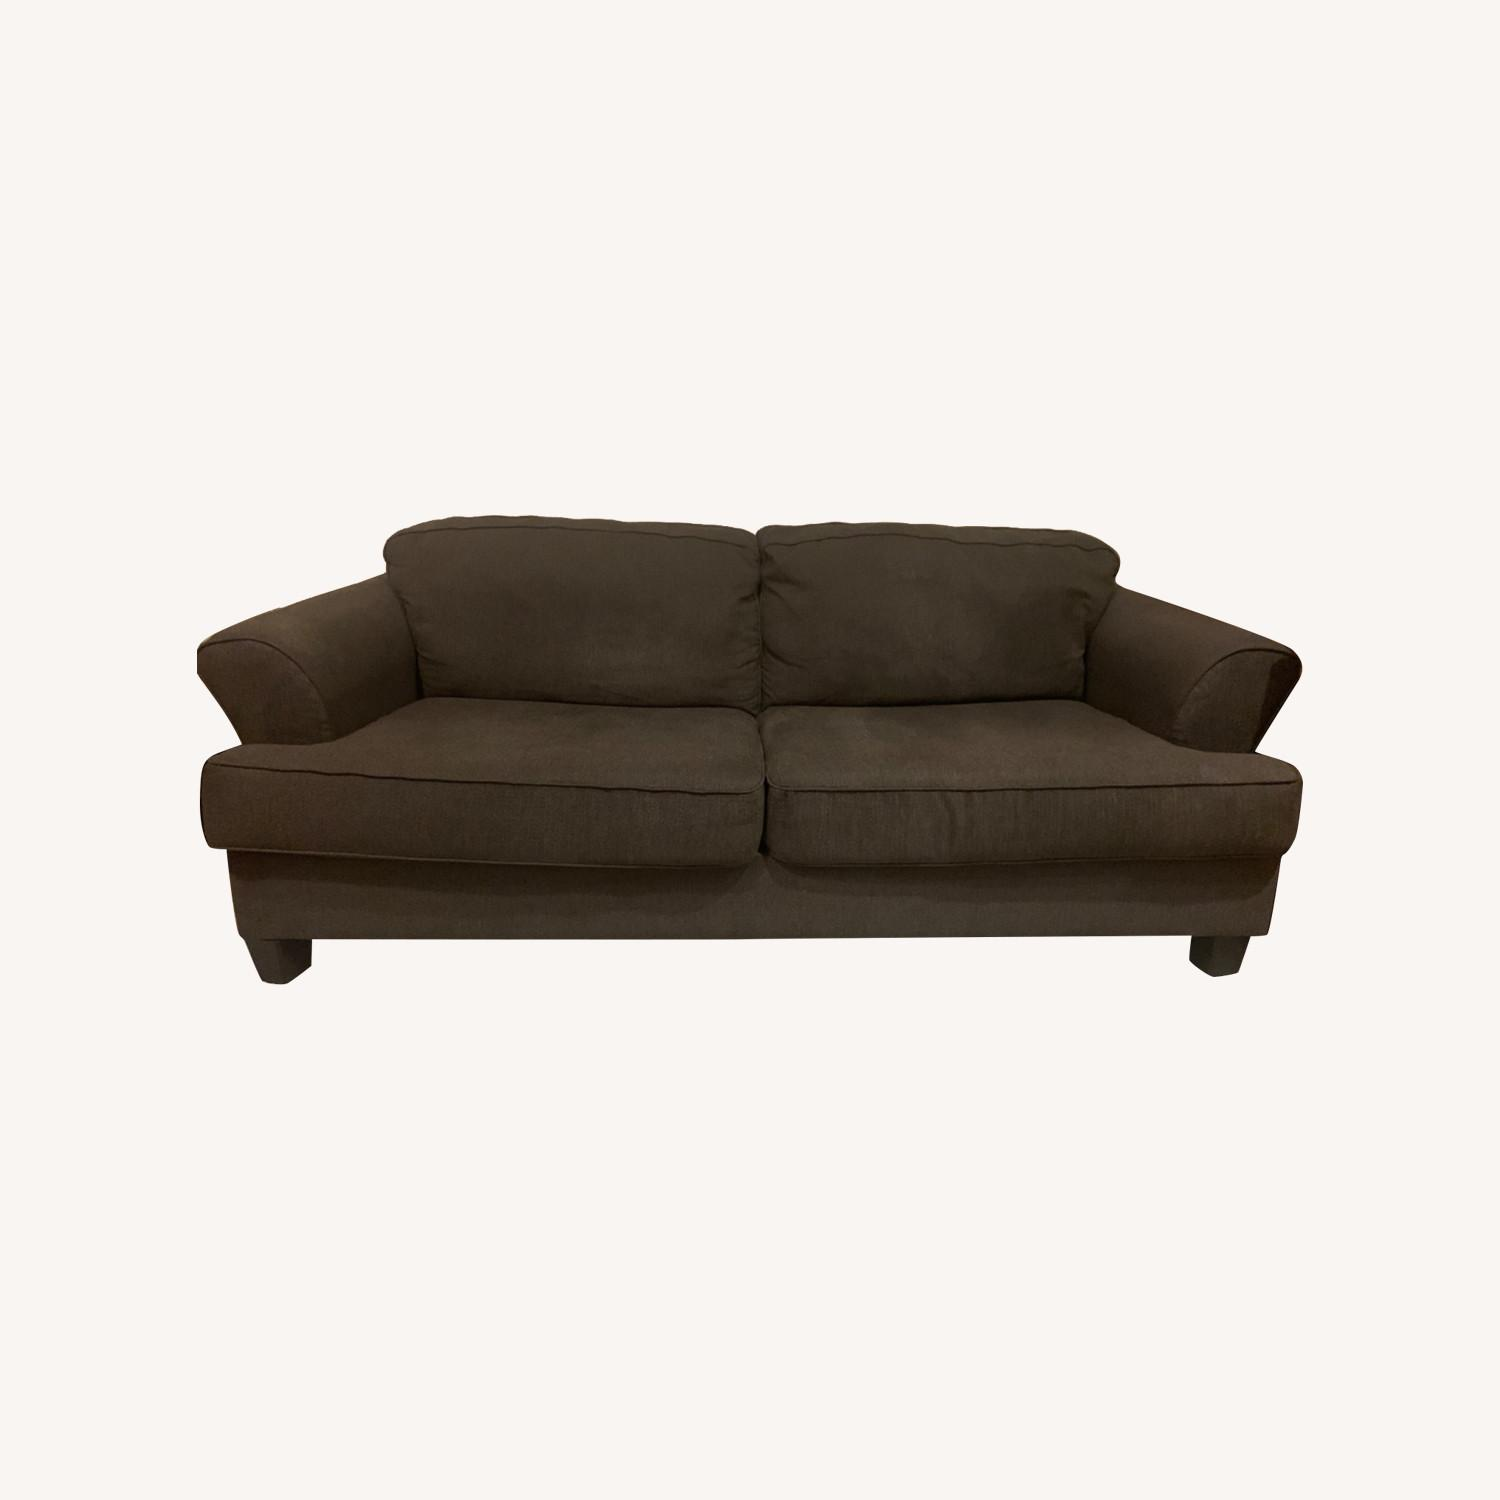 Ashley Furniture 2 Seater Sofa - image-0